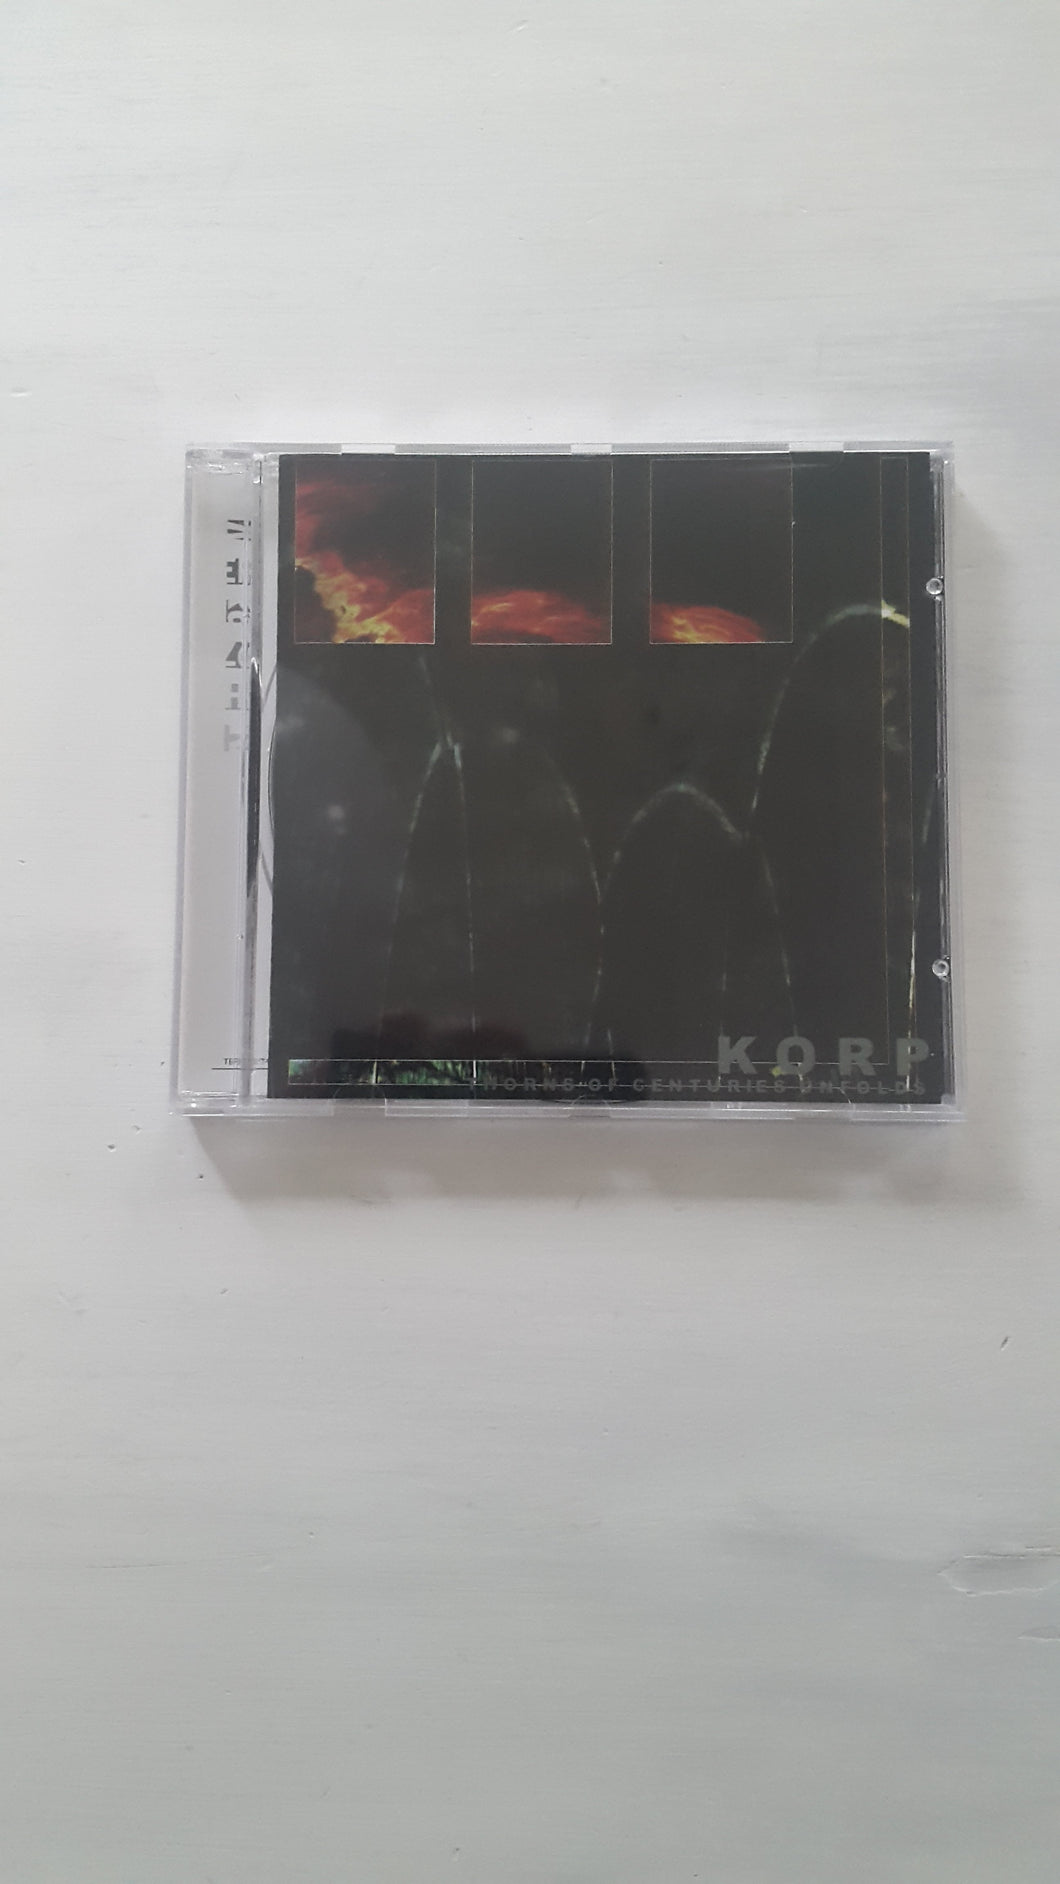 Korp-Thorns of Centuries Unfold